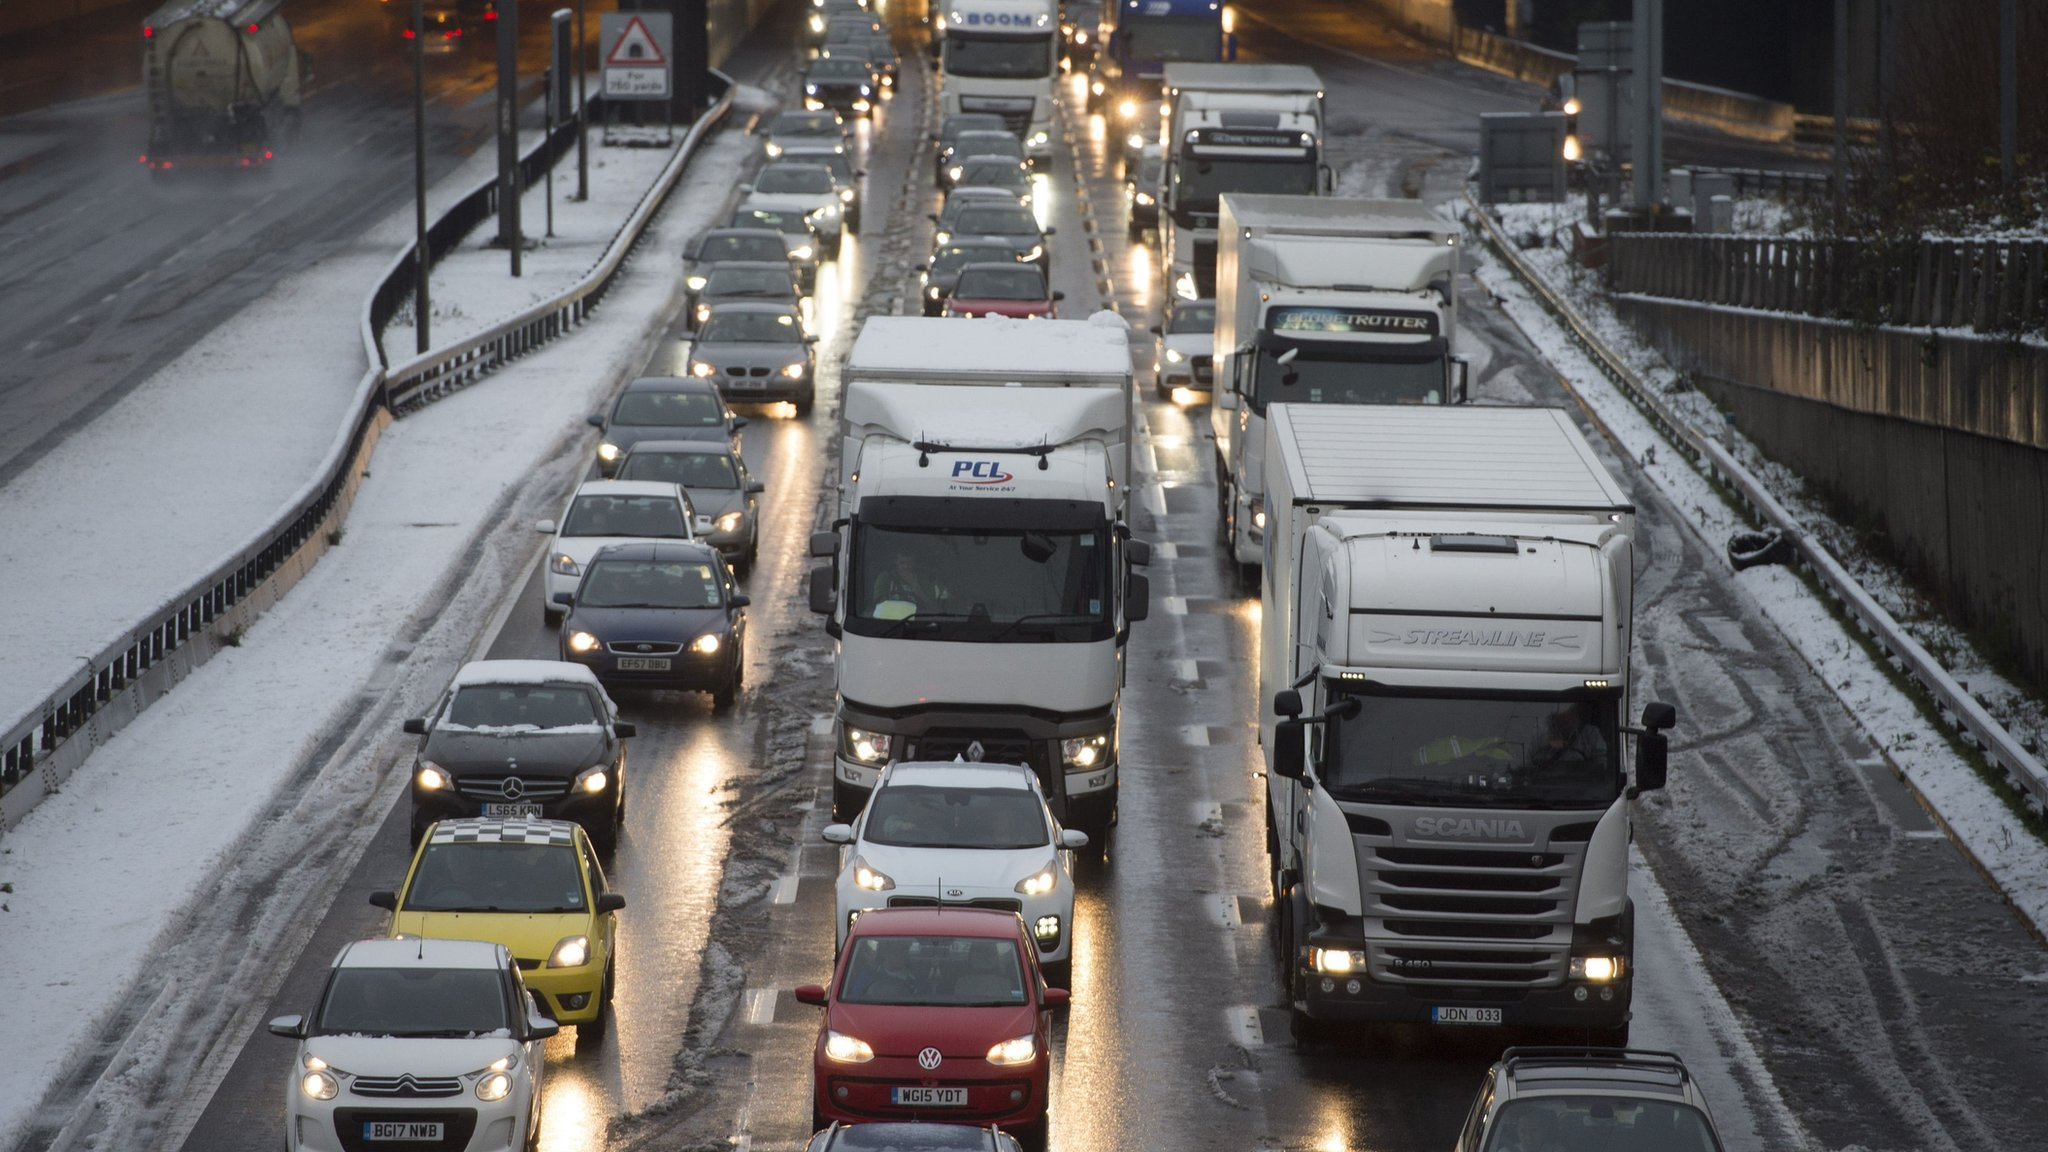 UK snow: Widespread travel delays and school closures